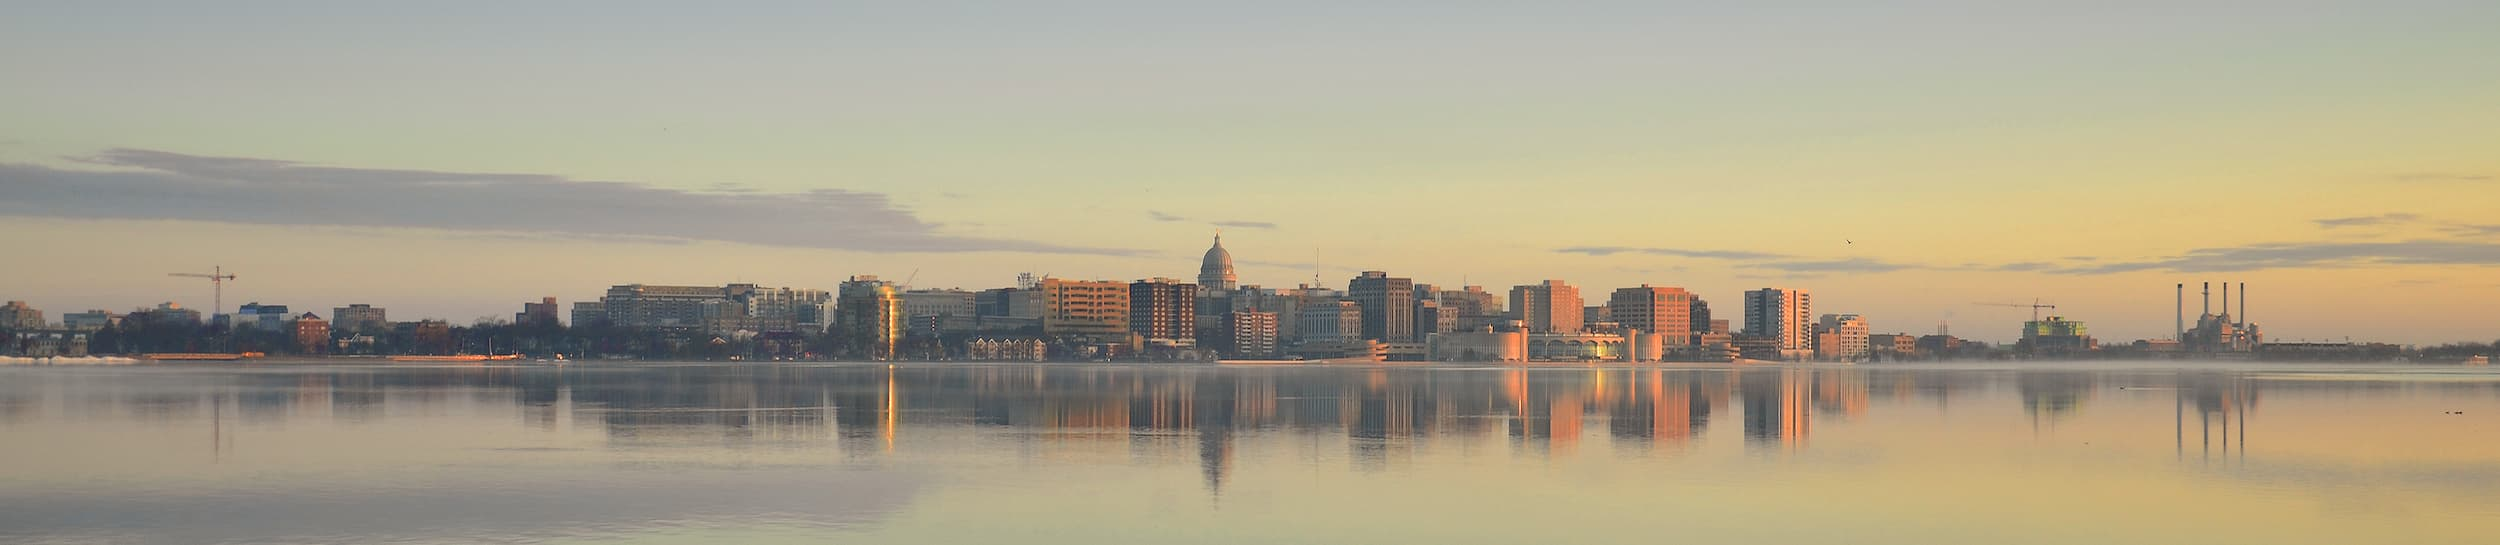 Pictured: skyline of Madison